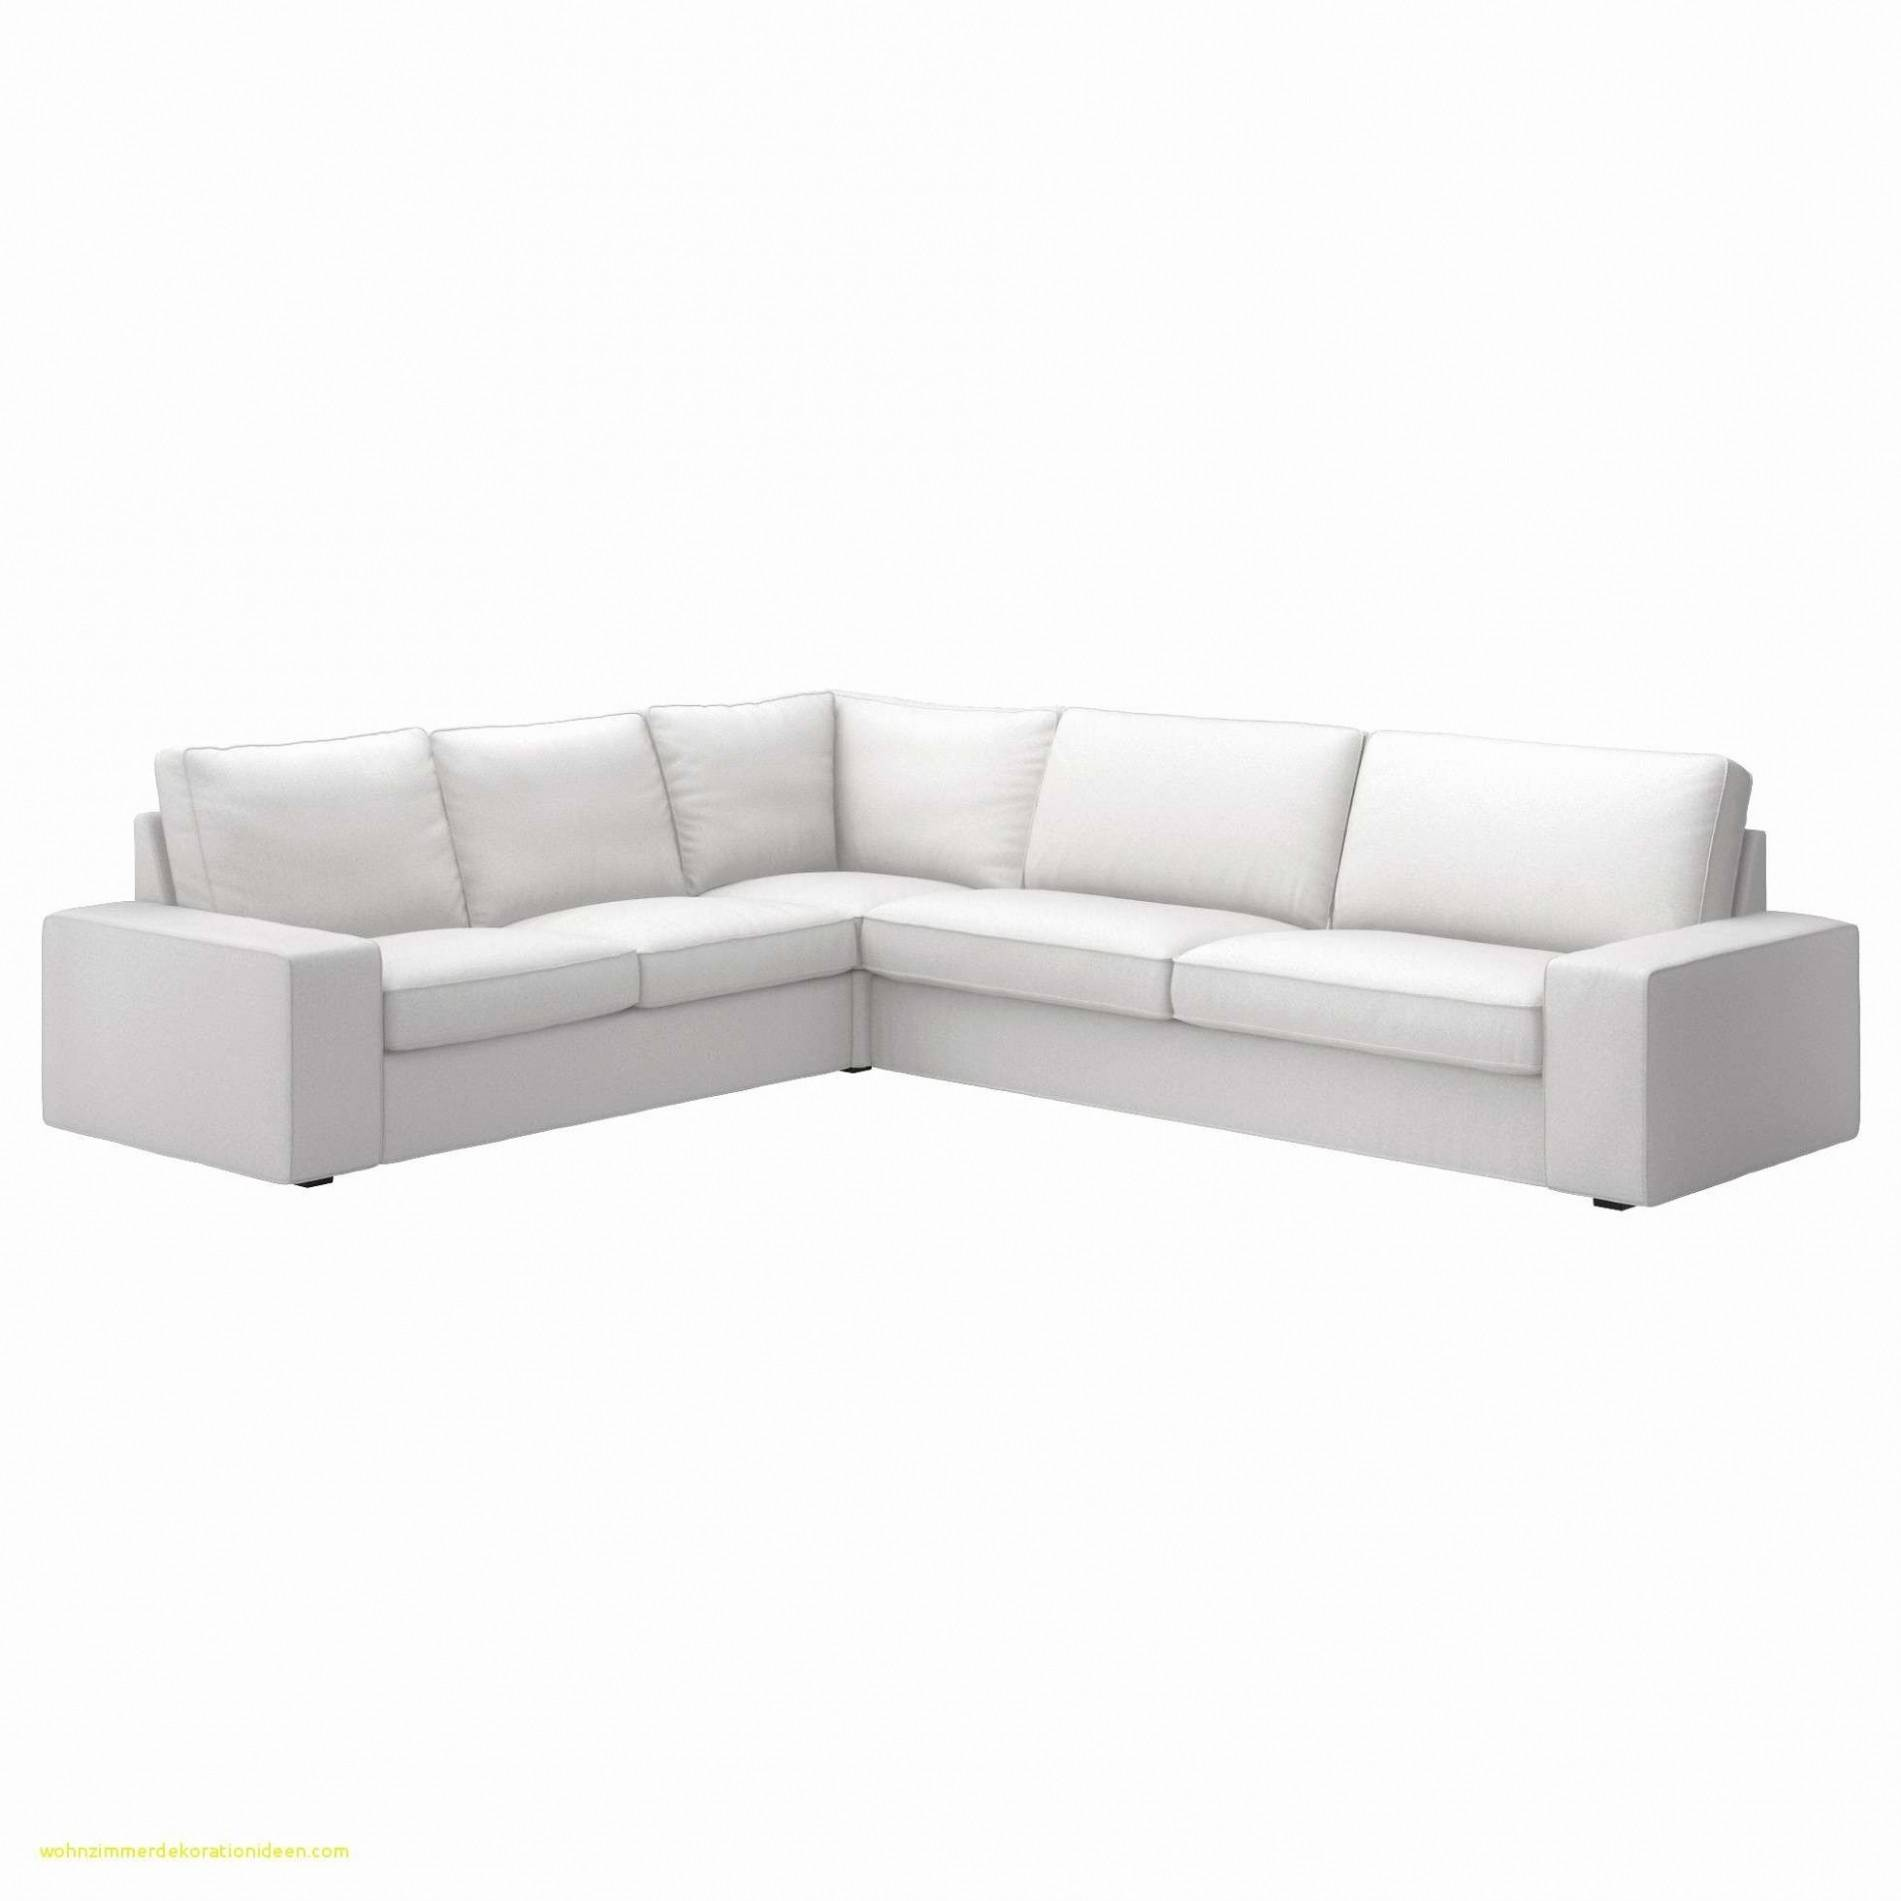 white sofa set living room couch 5 sitzer luxus 3er sofa grau cool sofa 3 5 sitzer 20 03 0d von of white sofa set living room